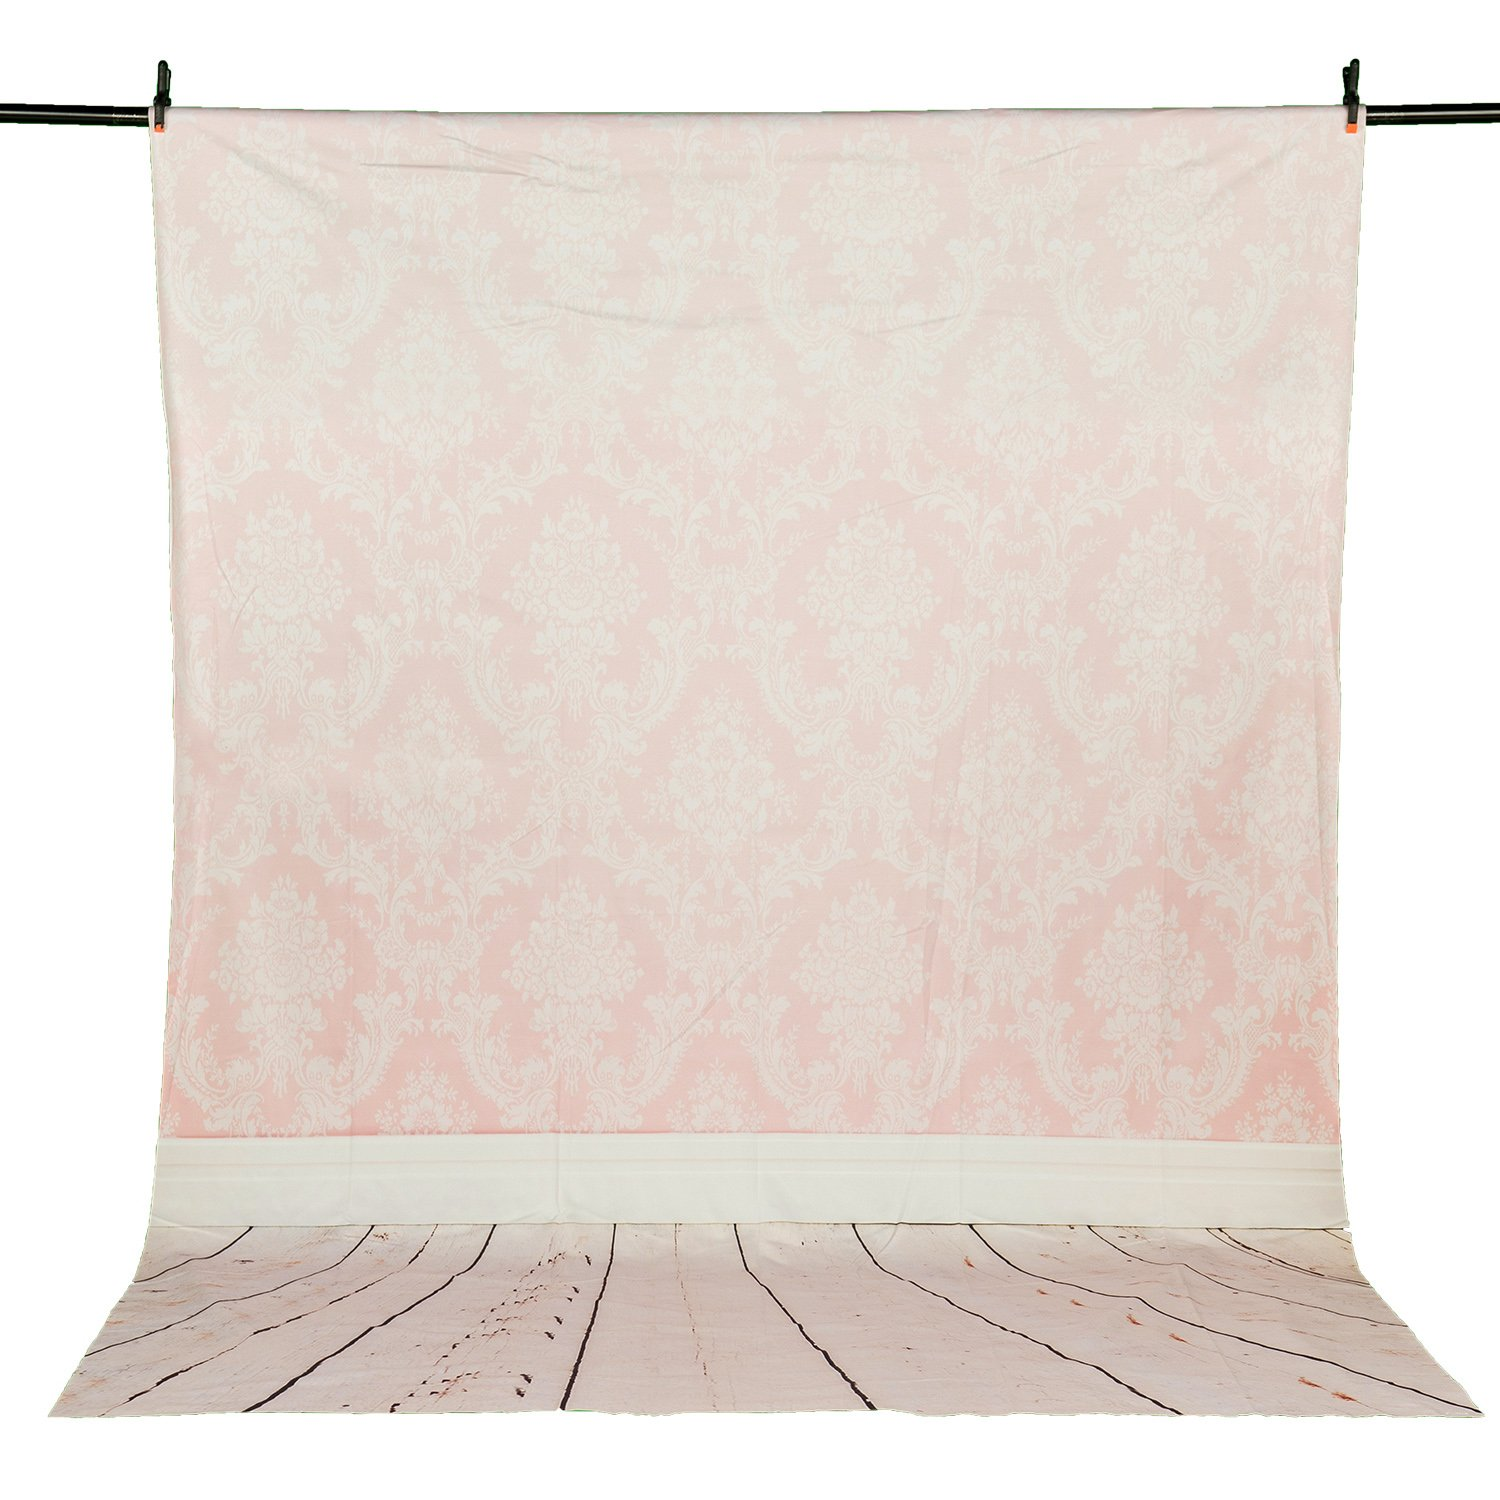 Allenjoy 5x7FT Polyester Damask Pink Photography Backdrop Wood Floor Brick Wall Background for Studio Photo Shooting Photocall